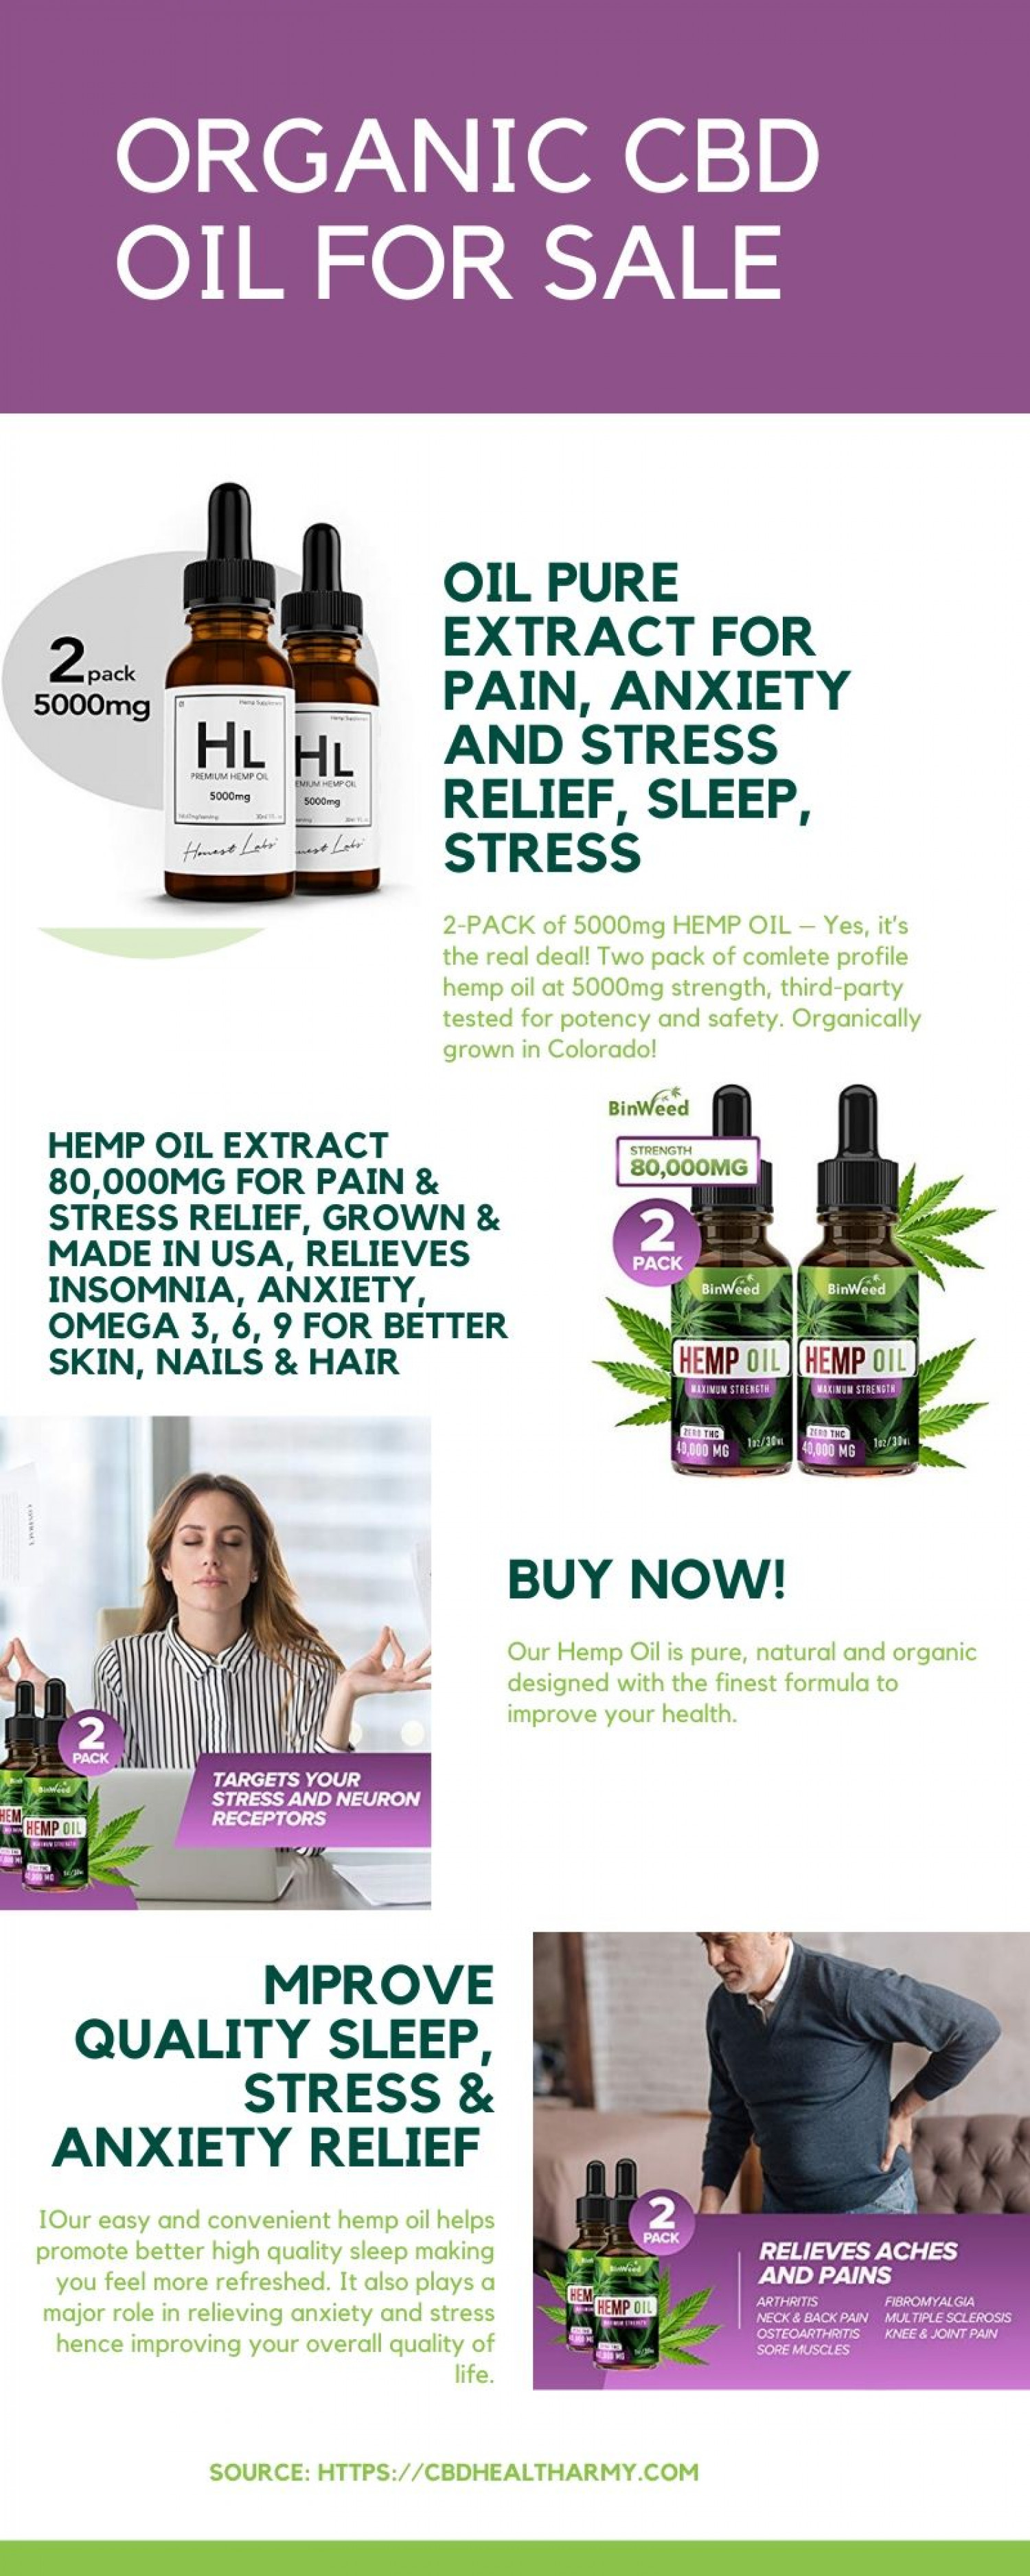 Organic Cbd oil for Sale Infographic